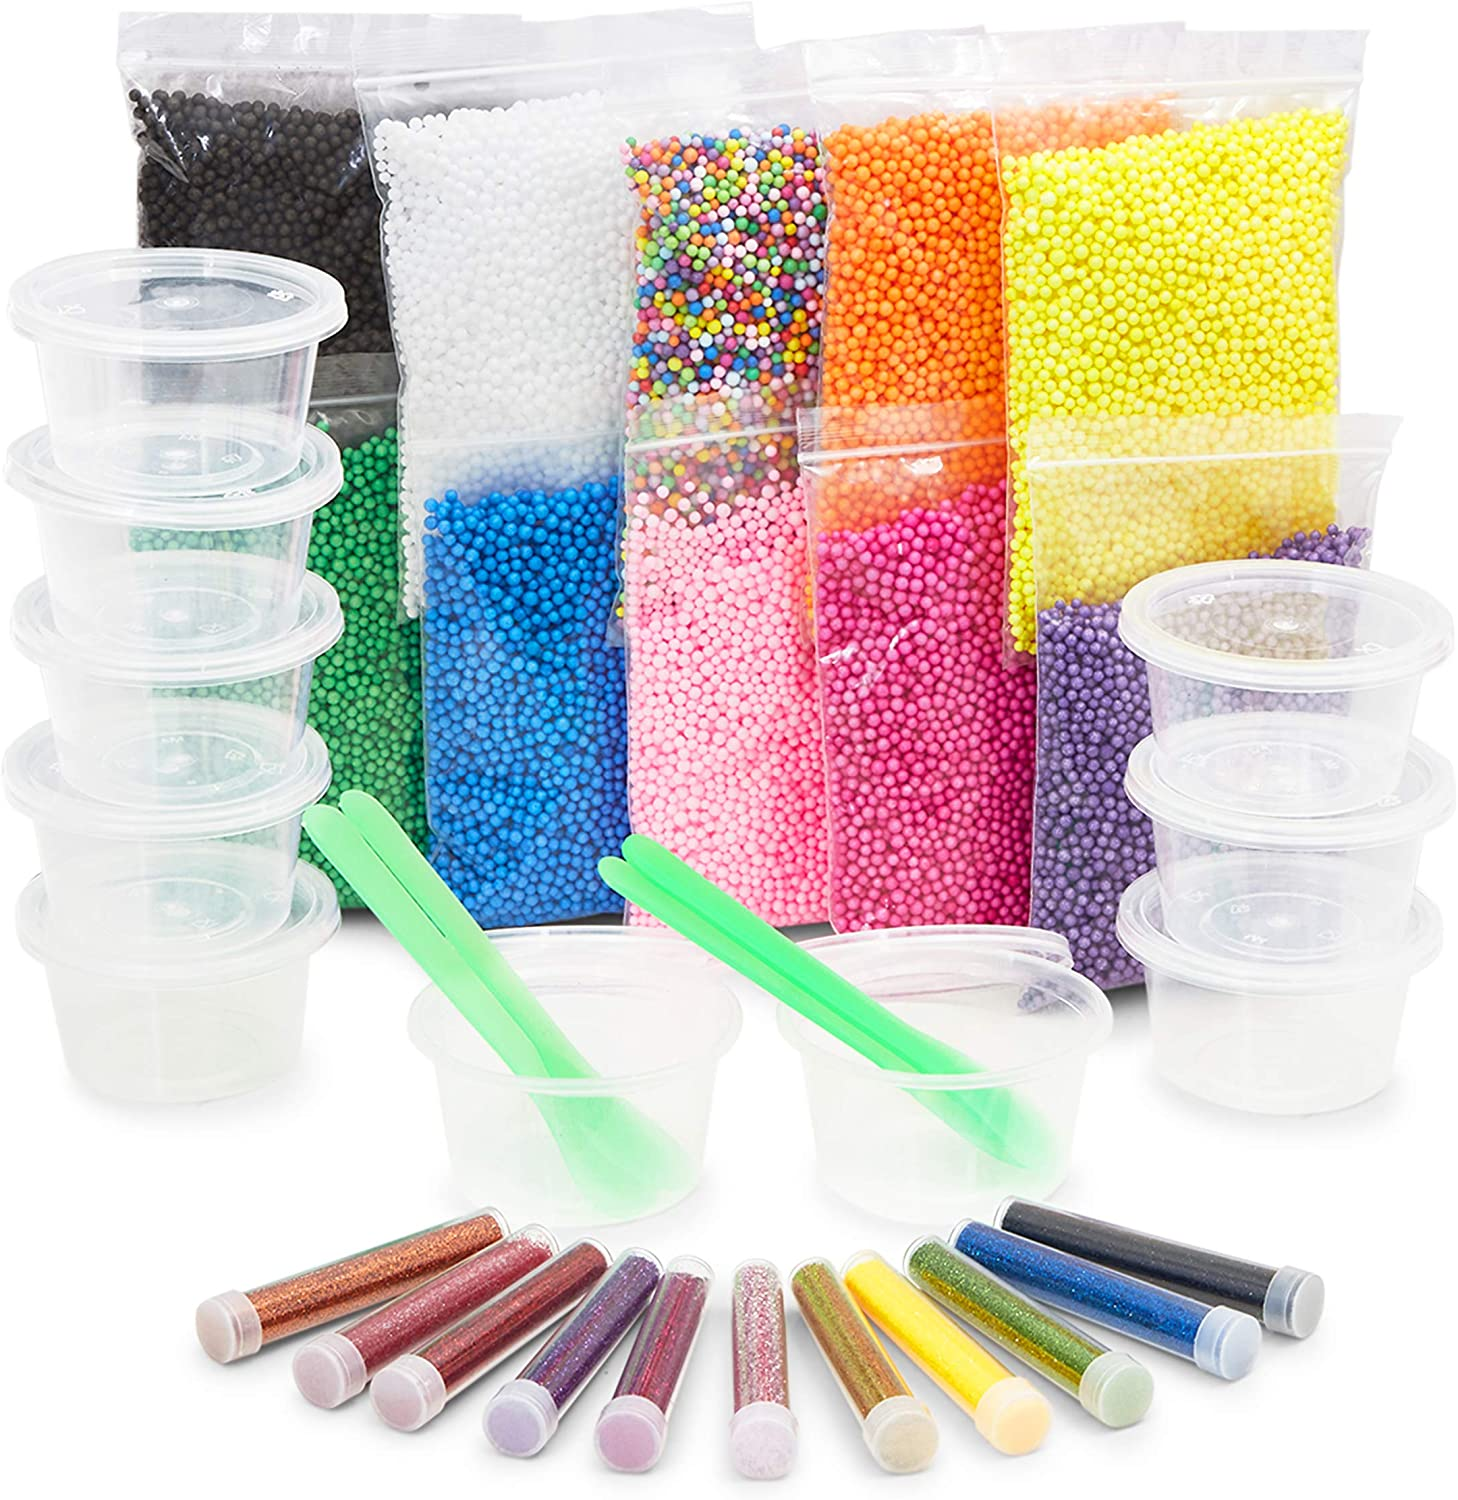 DIY Slime Making Kit with Foam Balls, Glitter Powder, Containers (35 Piece Set)